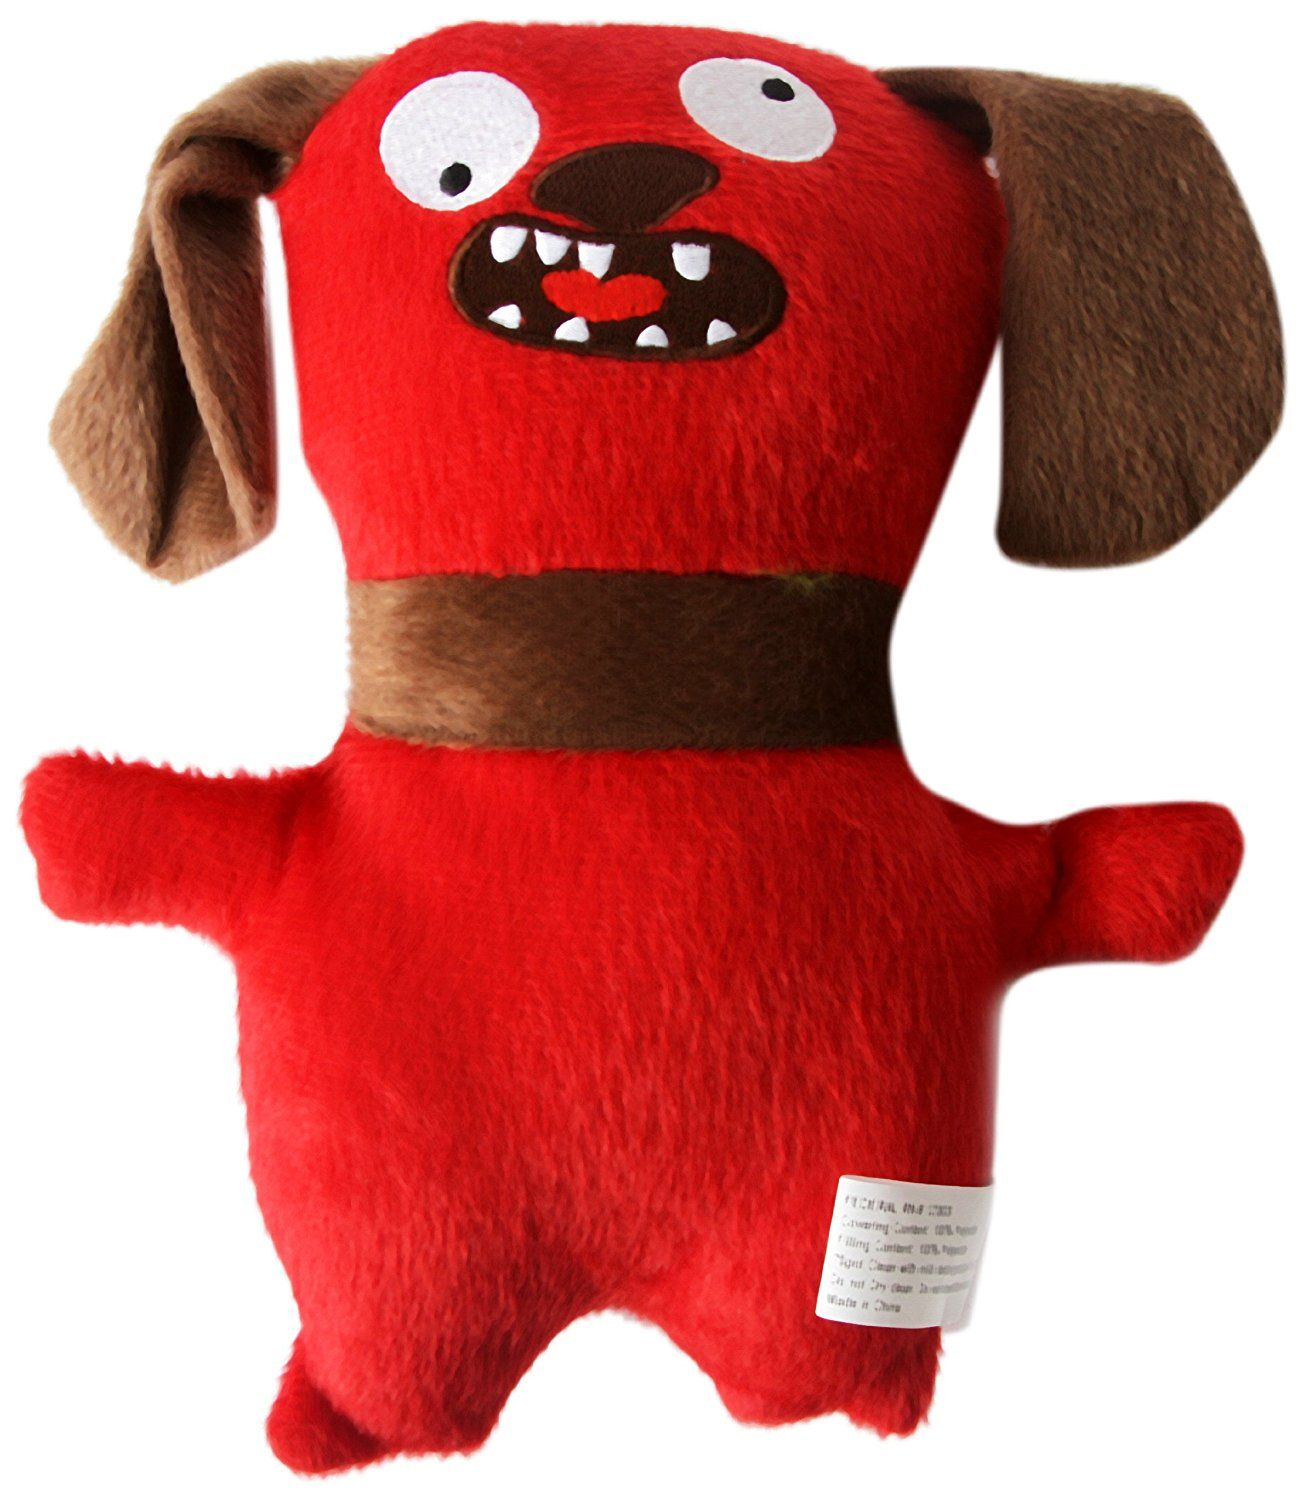 Dei Plush Ugly Dog Toy Red Read More Reviews Of The Product